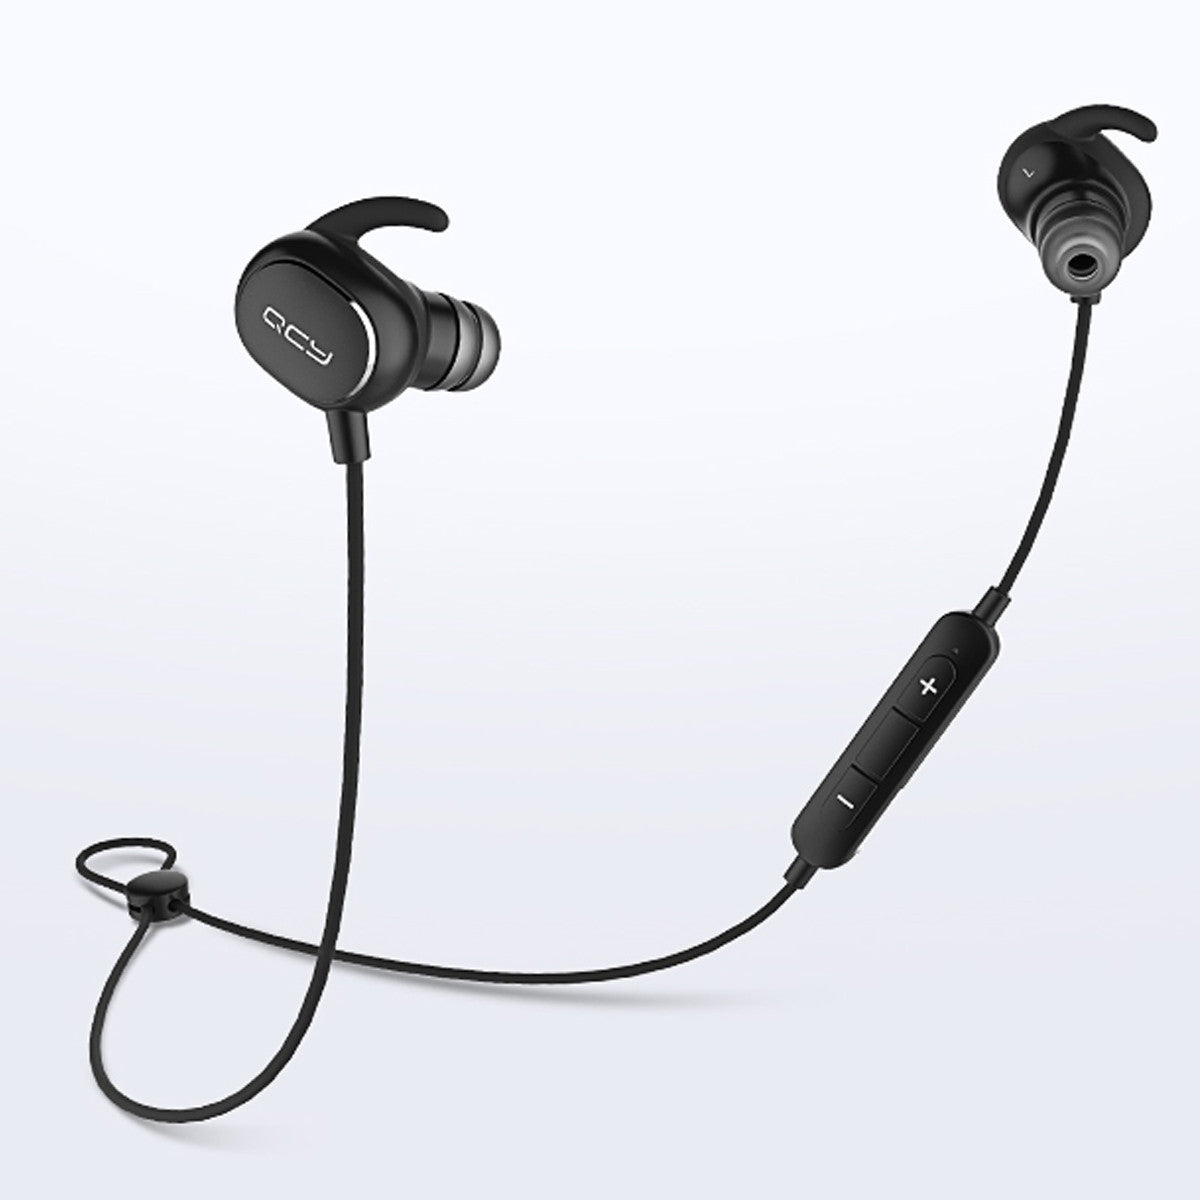 QCY Bluetooth Headphones For iPhone